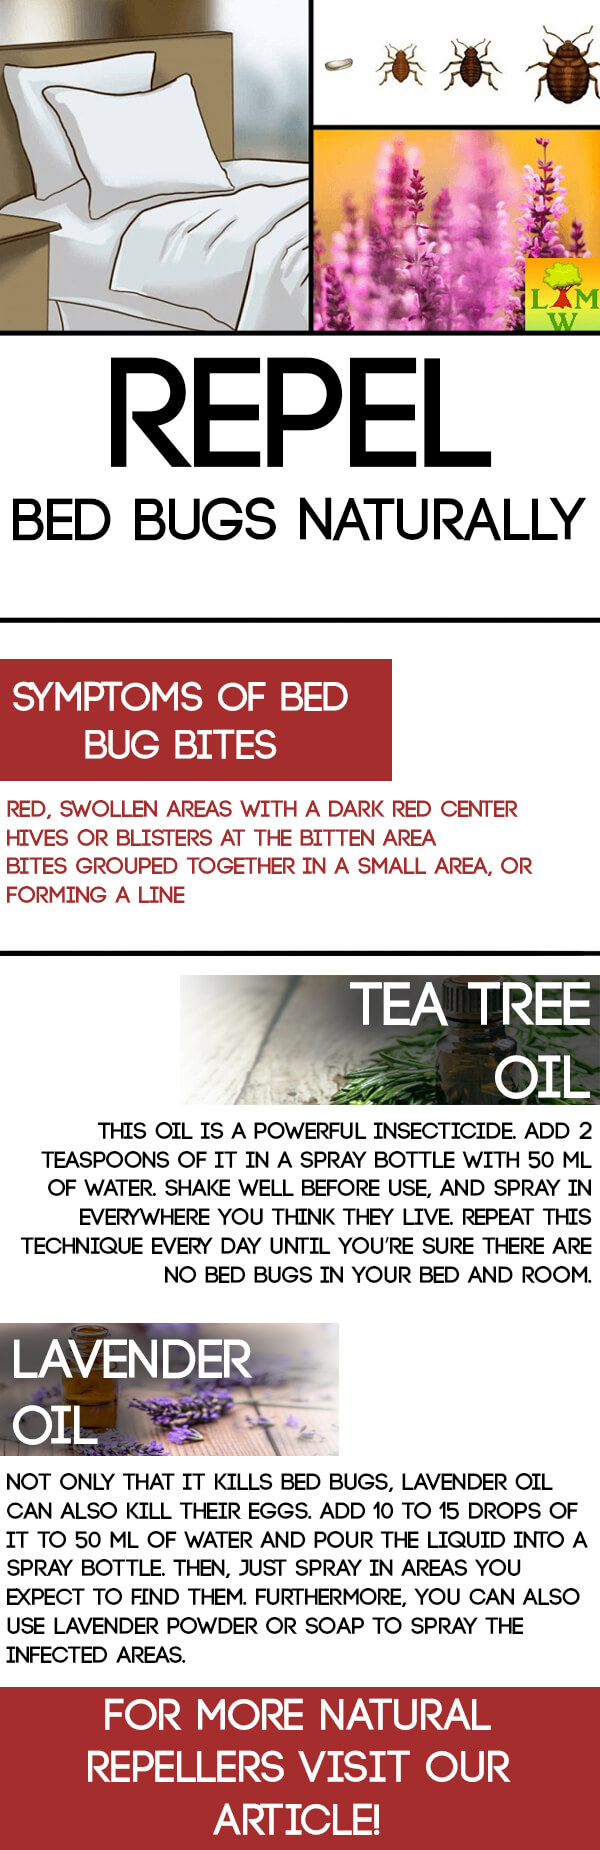 Repel Bed Bugs Naturally (With images) Bed bugs, Bed bug